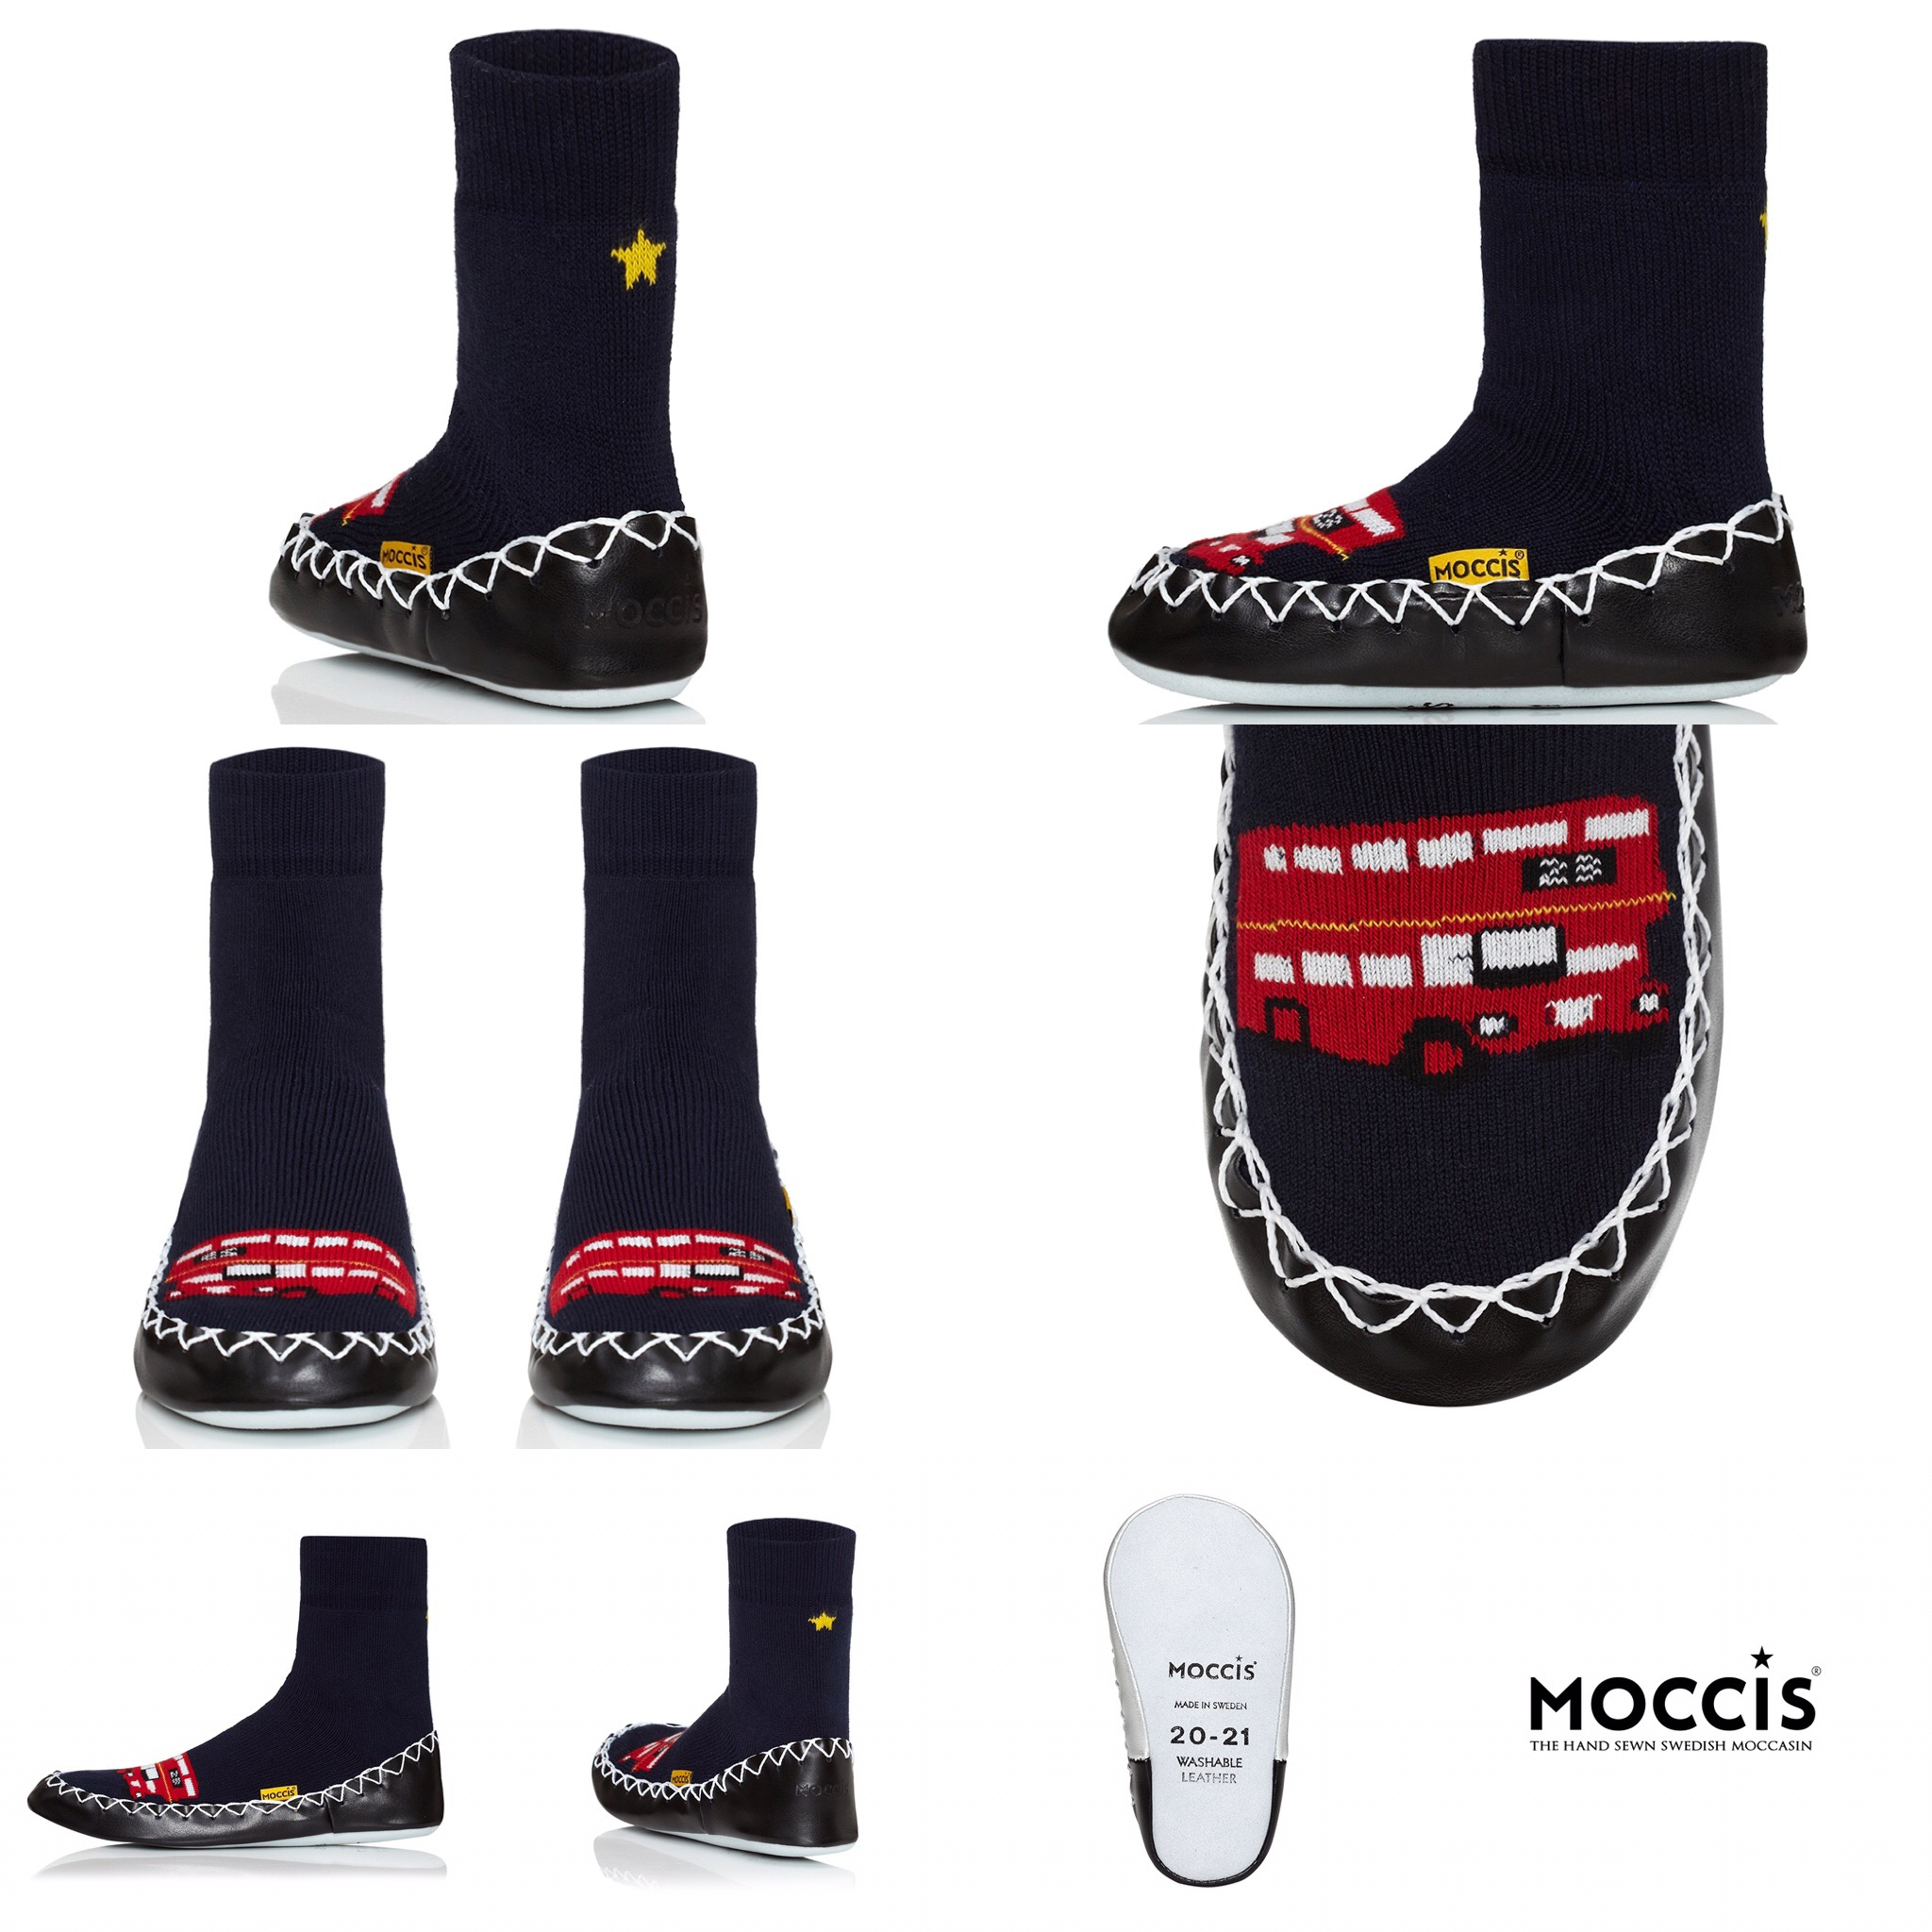 Moccis slipper cocks for children and adults - London Calling - Sartorial Boutique and Gifts